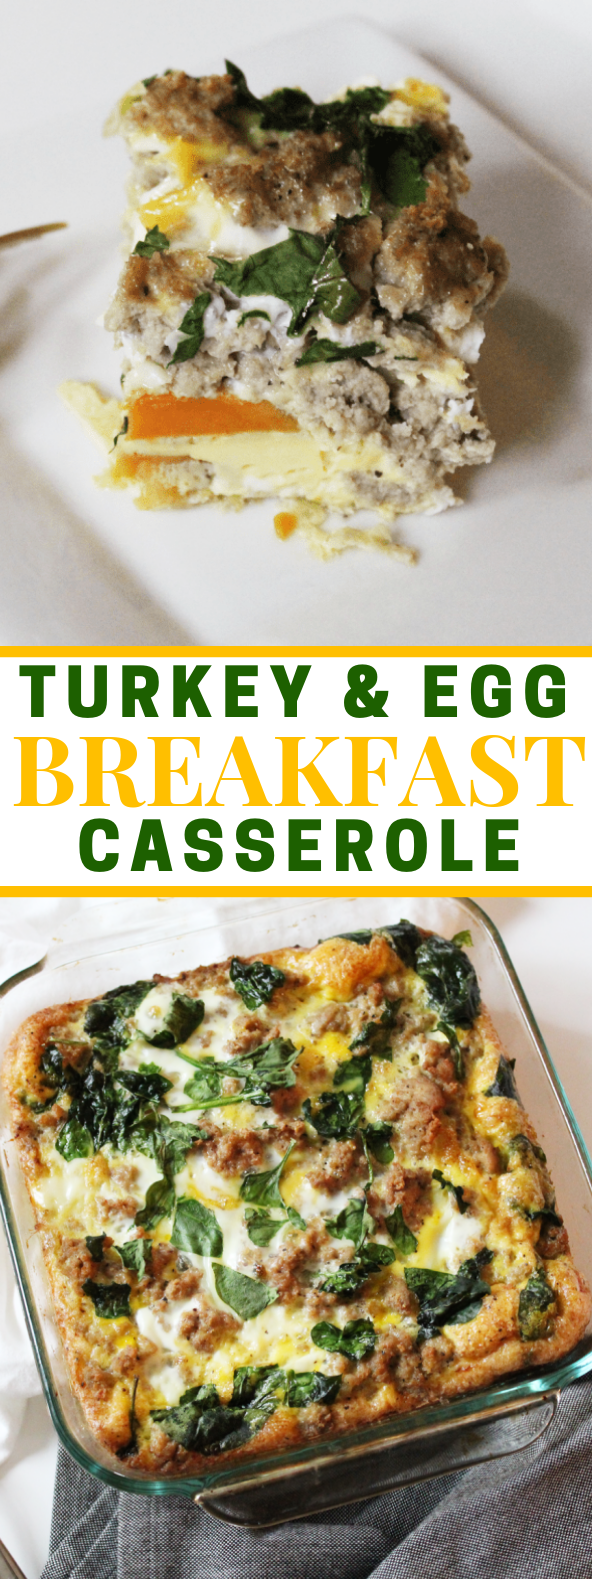 Turkey & Egg Breakfast Casserole #paleo #breakfast